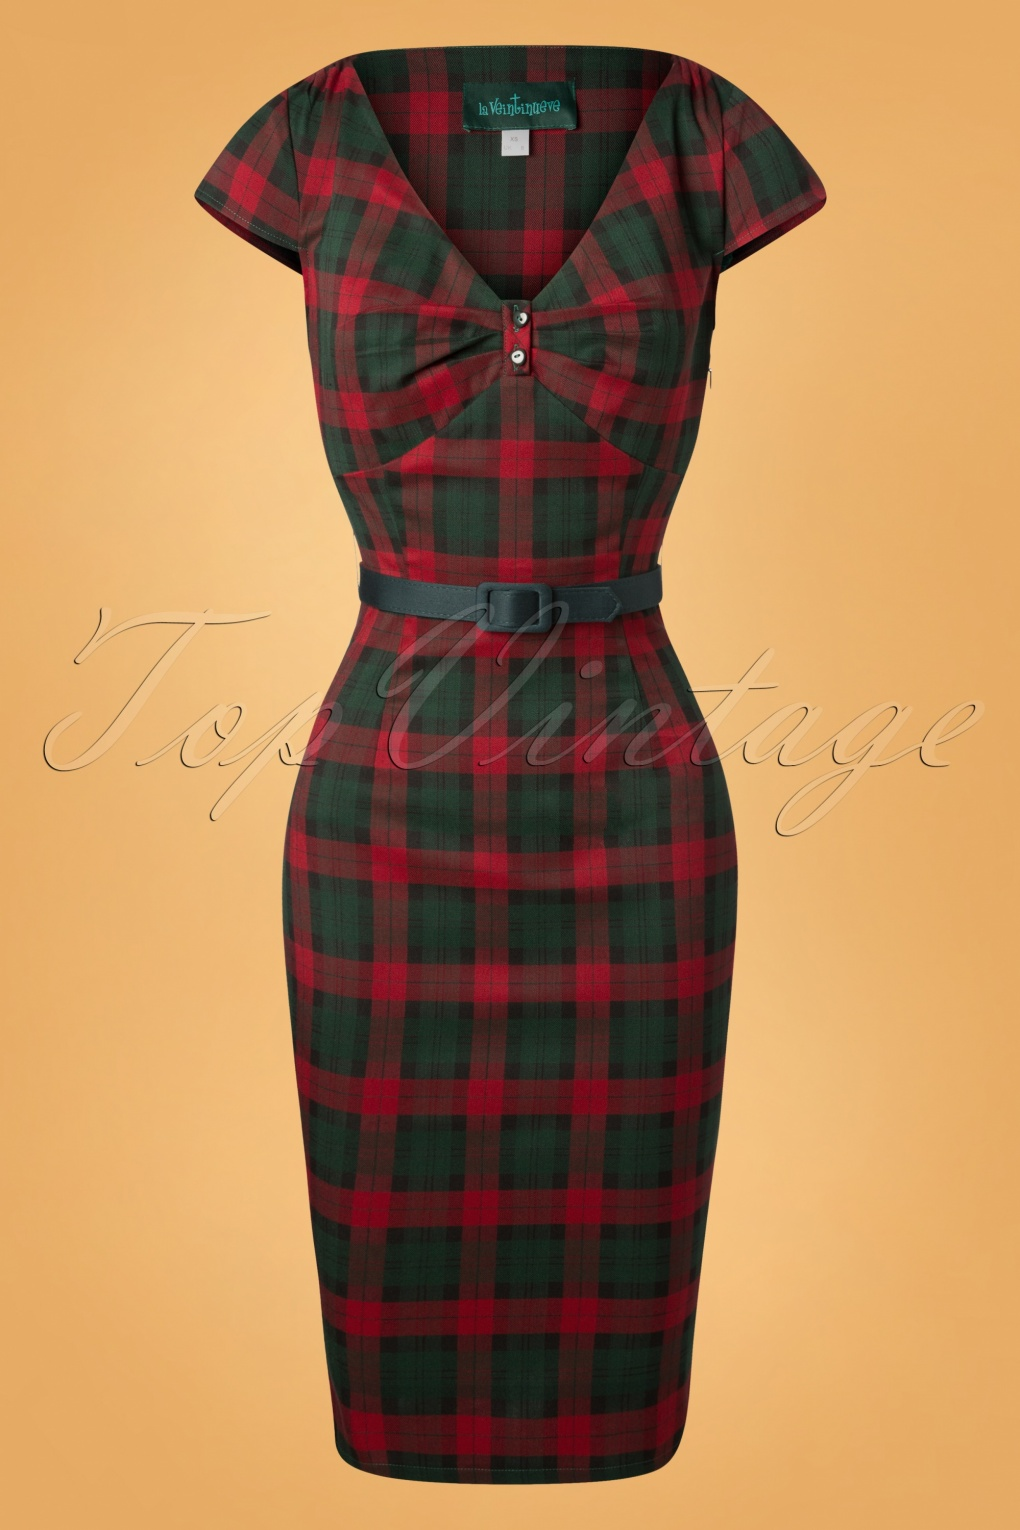 What Did Women Wear in the 1950s? 1950s Fashion Guide 50s Irene Tartan Pencil Dress in Red and Green £72.21 AT vintagedancer.com